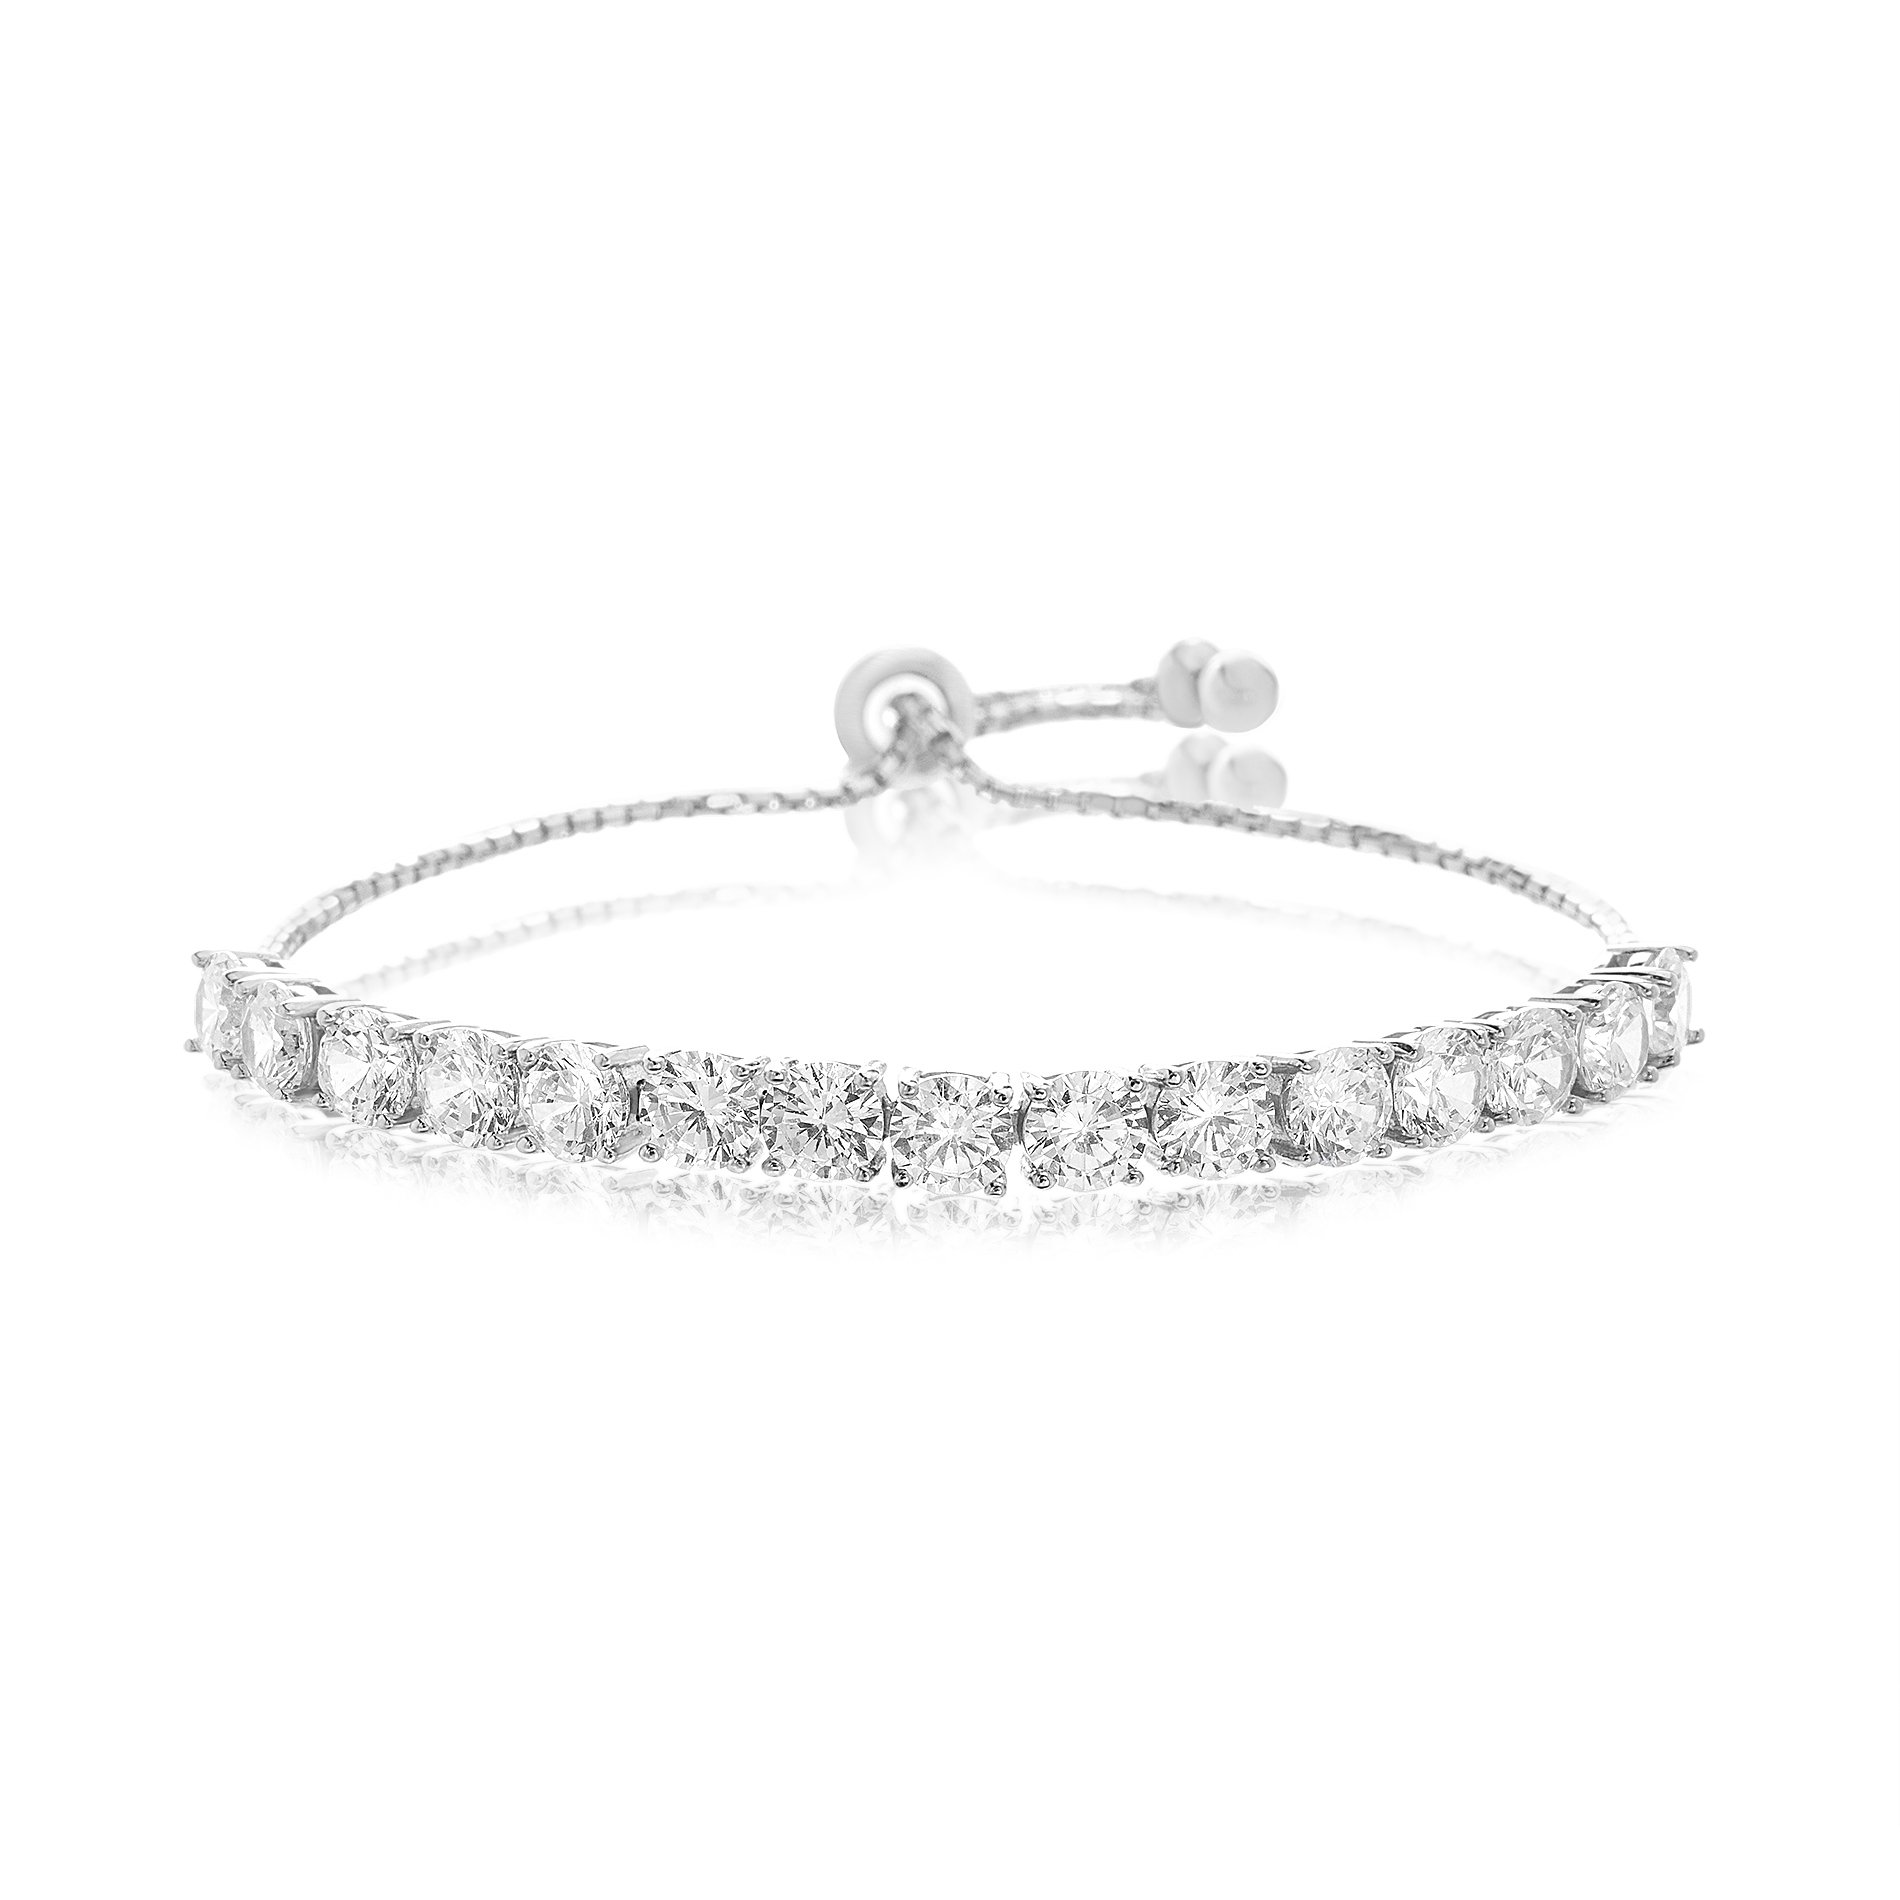 Lesa Michele Lab Created Cubic Zirconia Tennis Bolo Bracelet in Sterling Silver